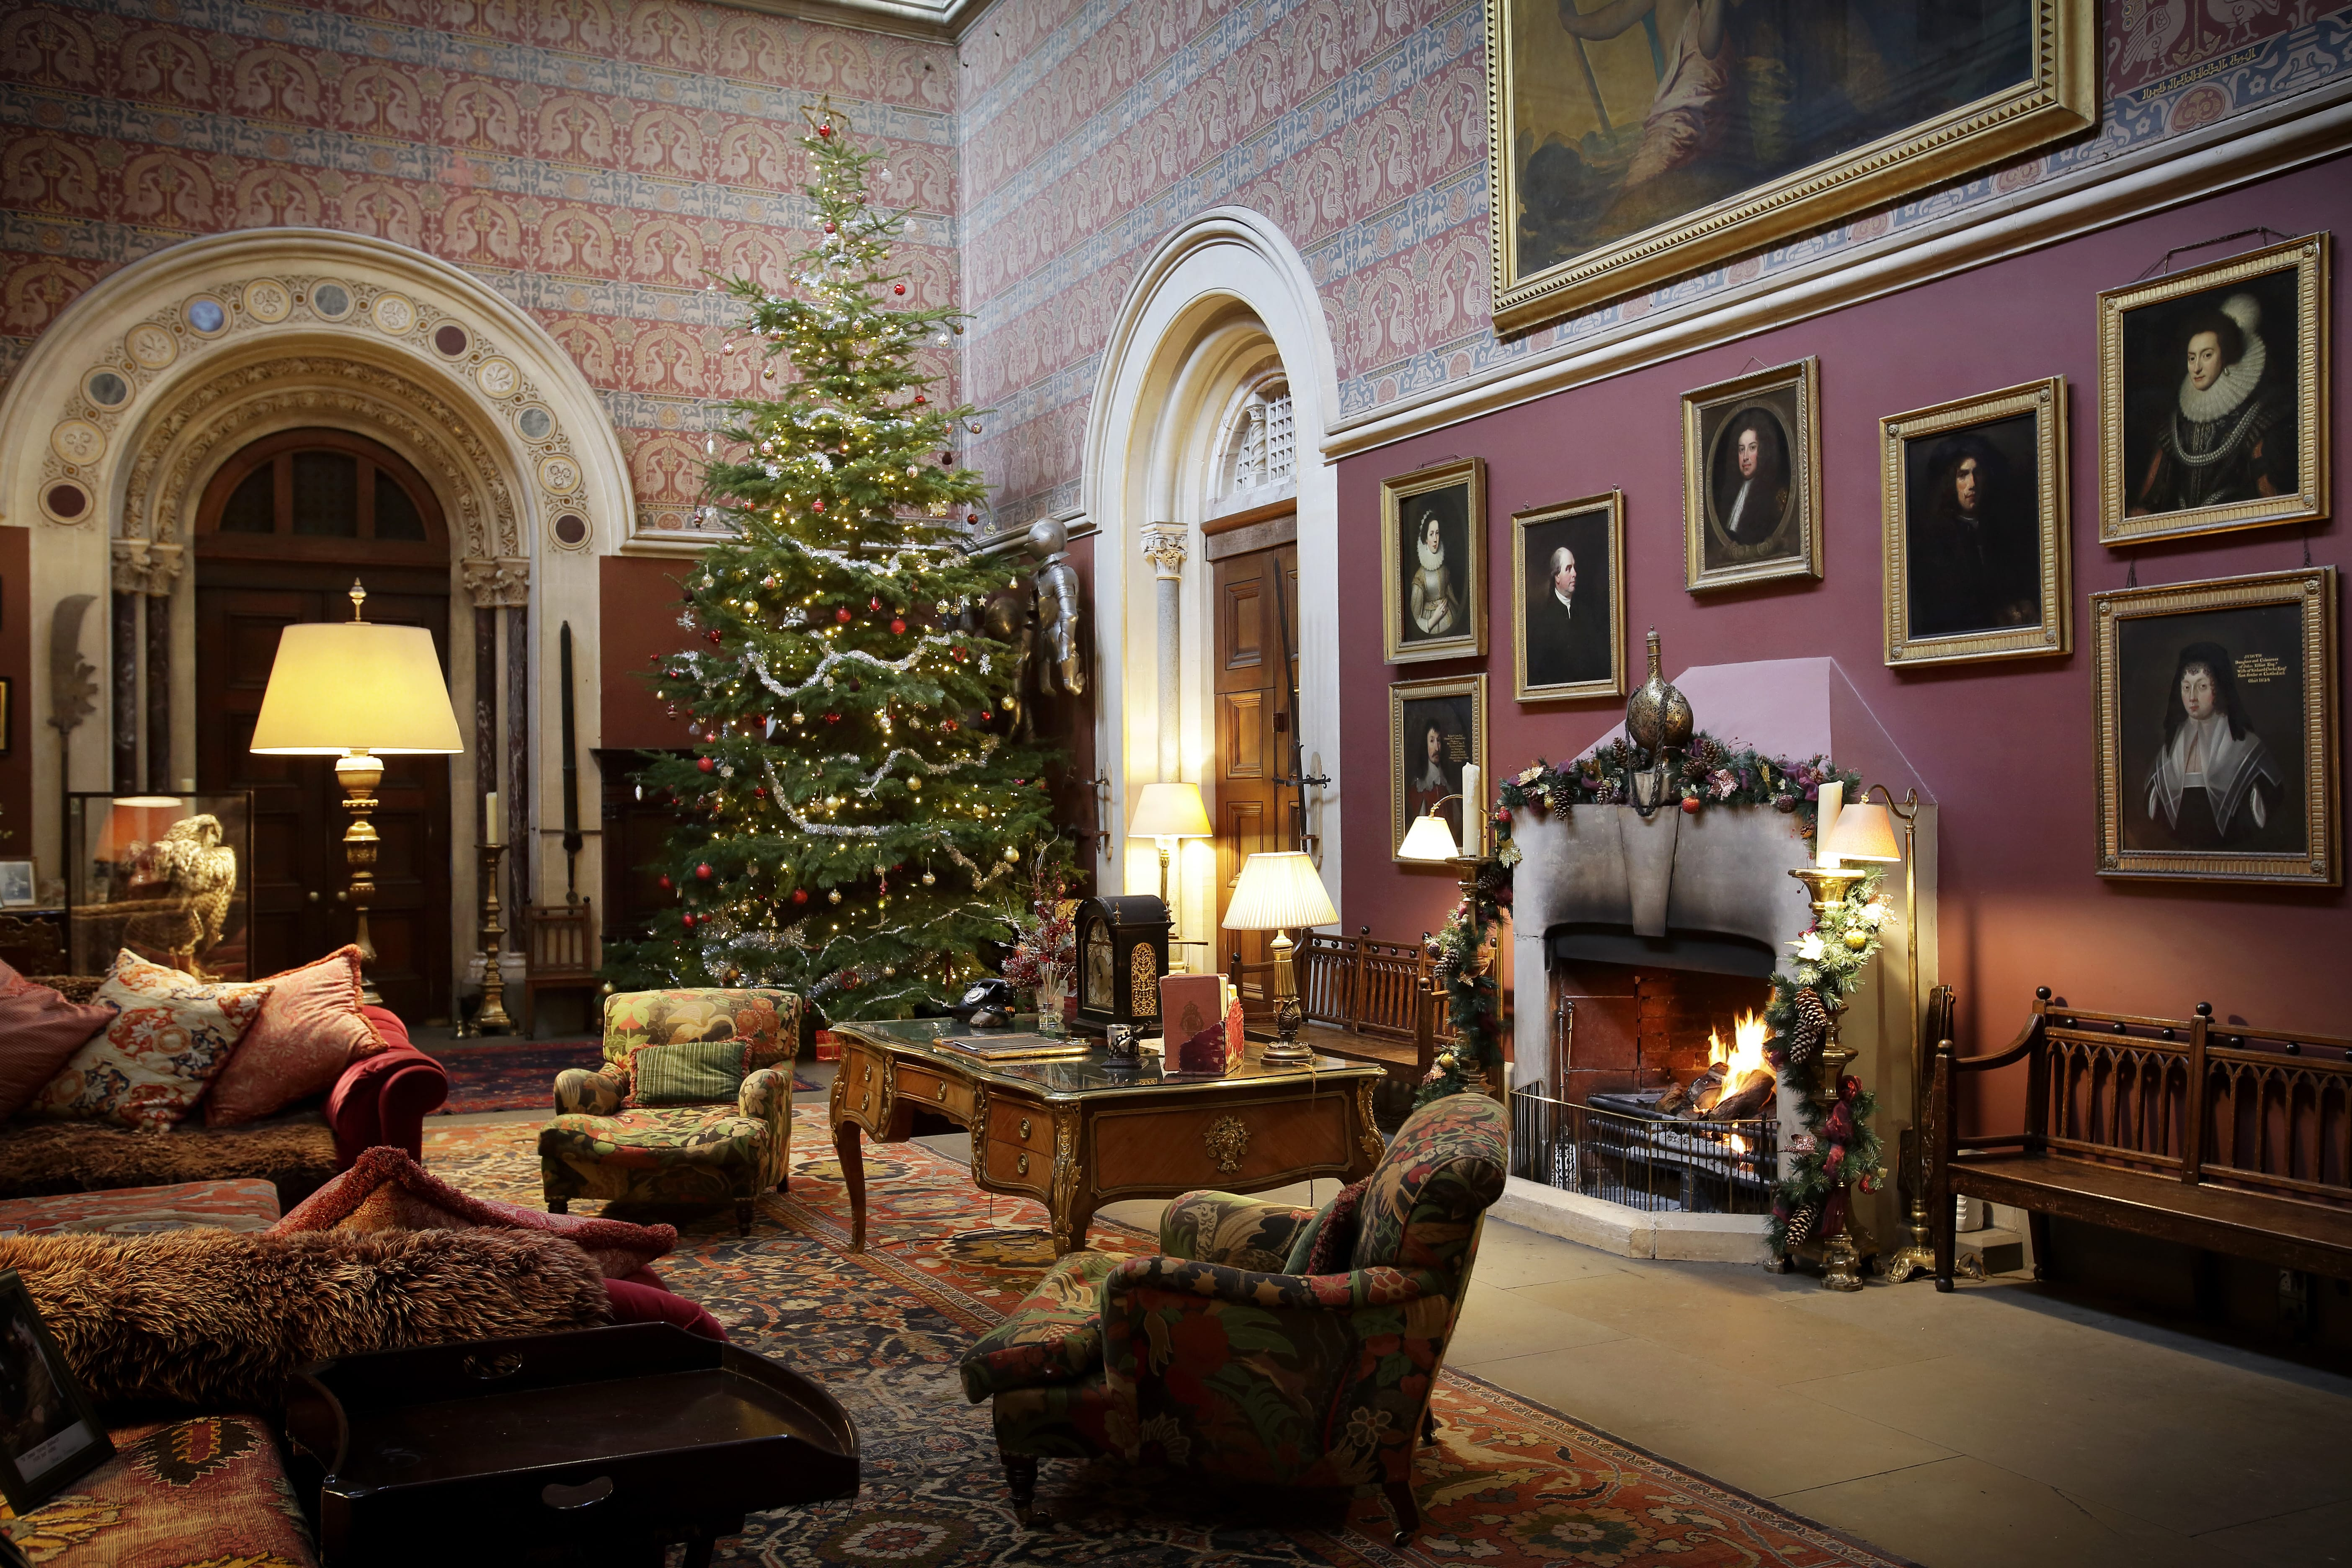 The Great Hall at Eastnor Castle with Christmas Decorations and tree up